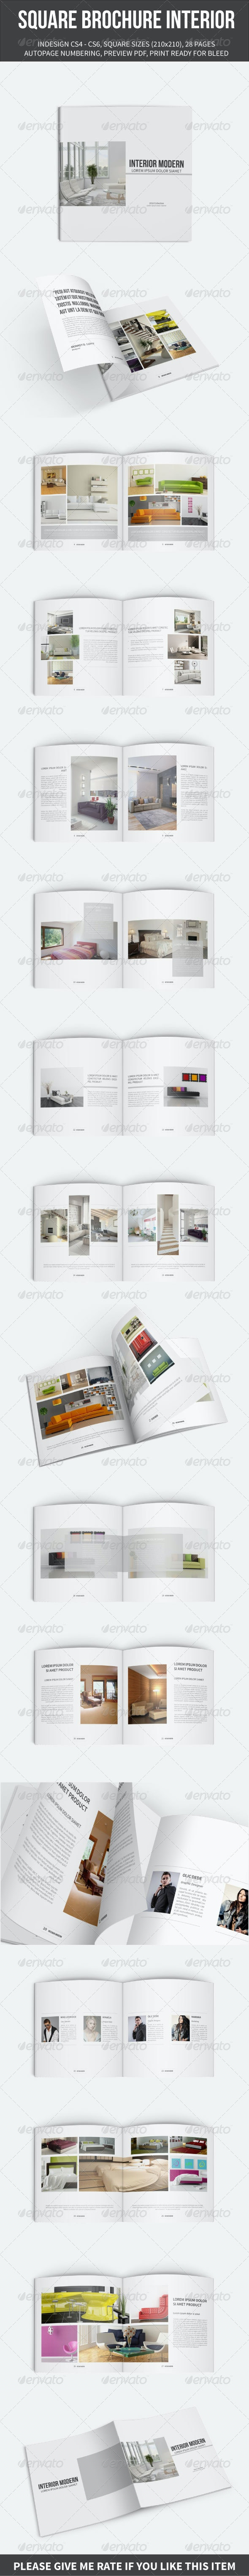 SQUARE BROCHURE INTERIOR TEMPLATE - Brochures Print Templates